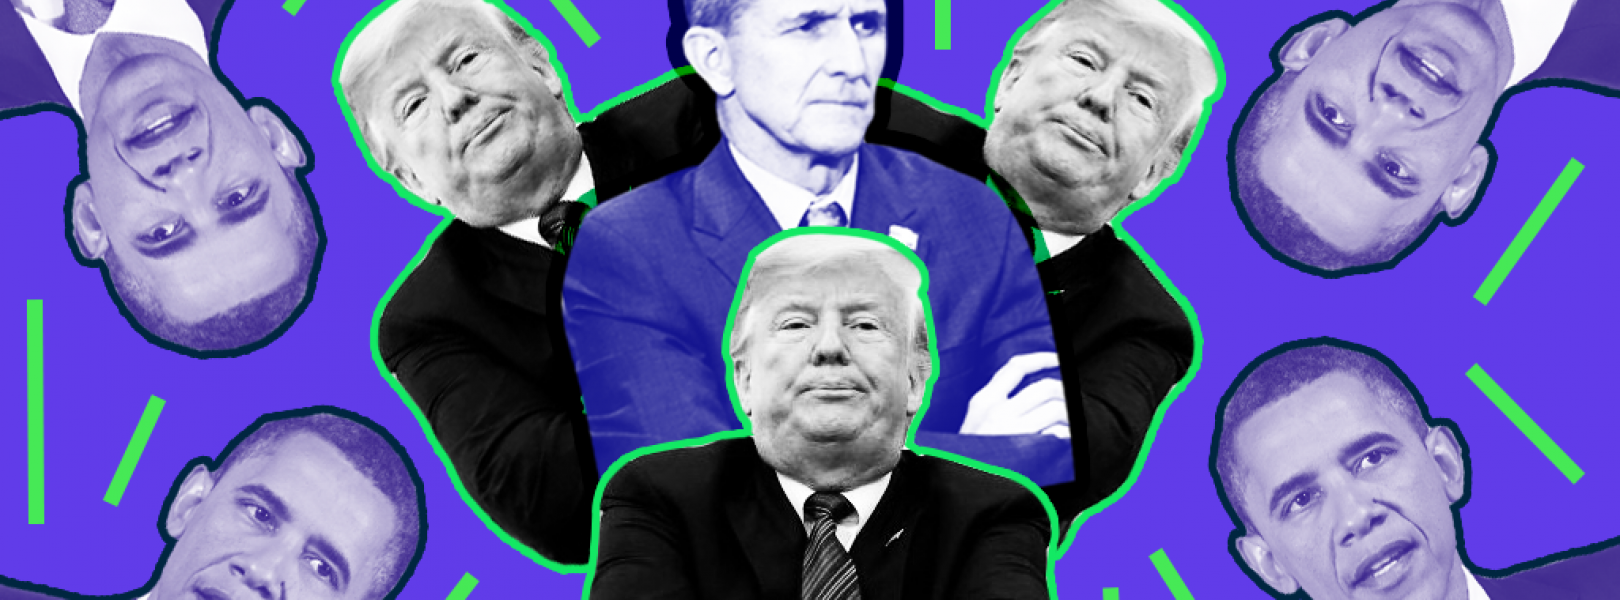 Trump, Flynn and Obama